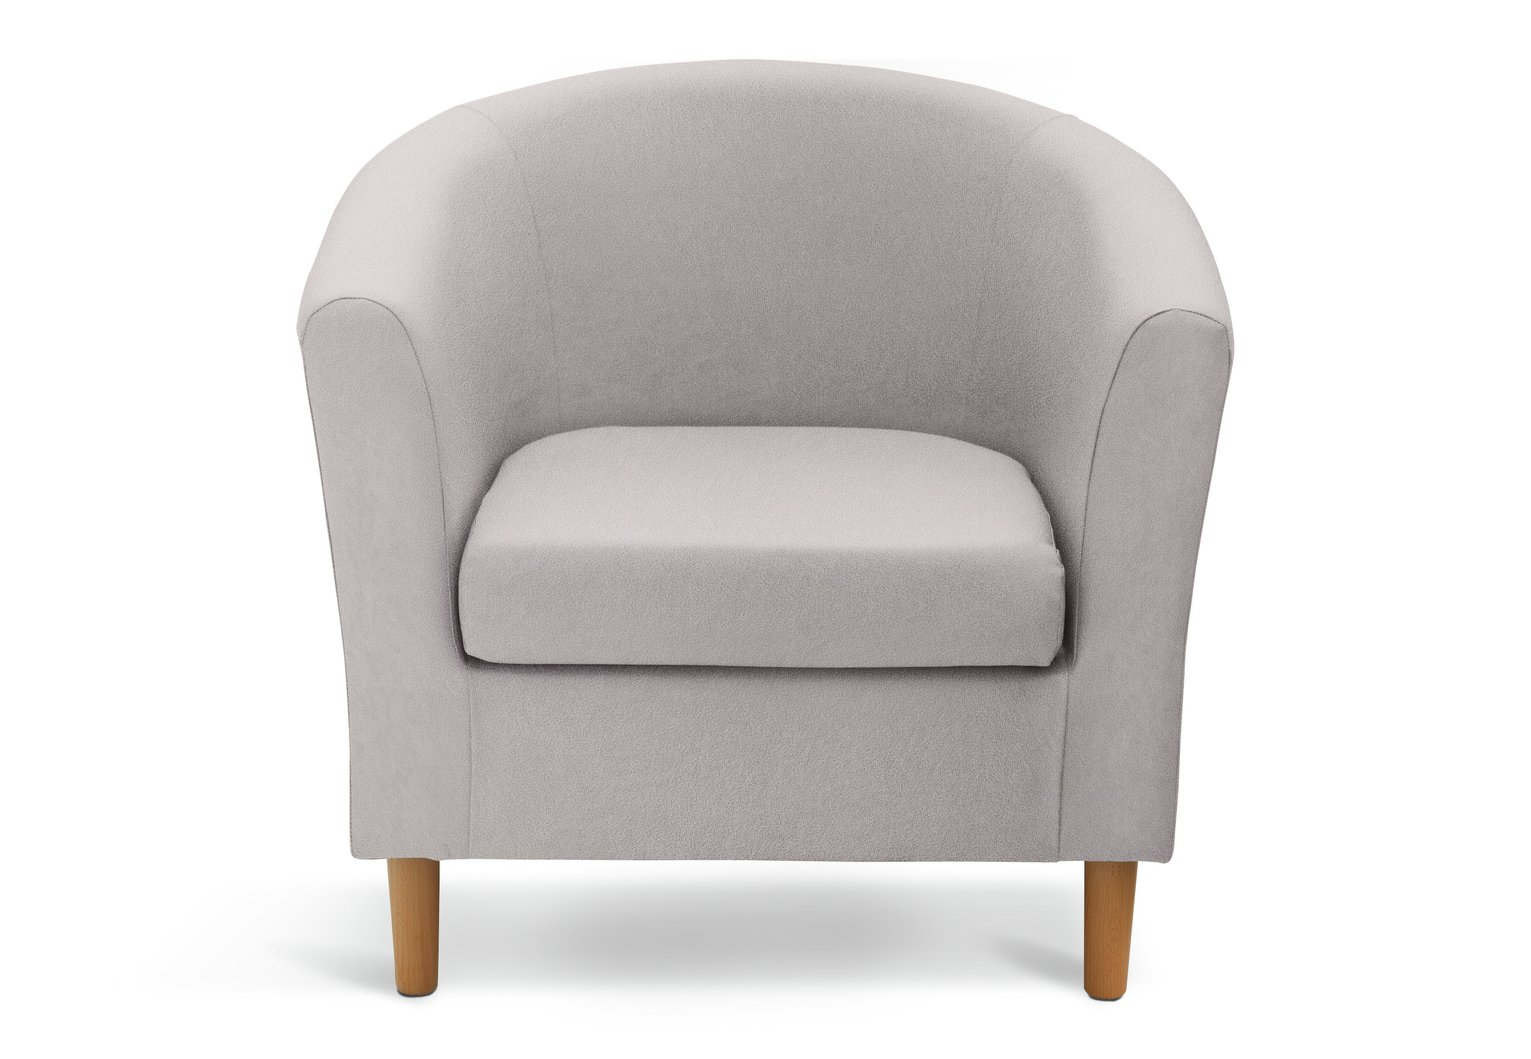 Argos Home Fabric Tub Chair - Light Grey